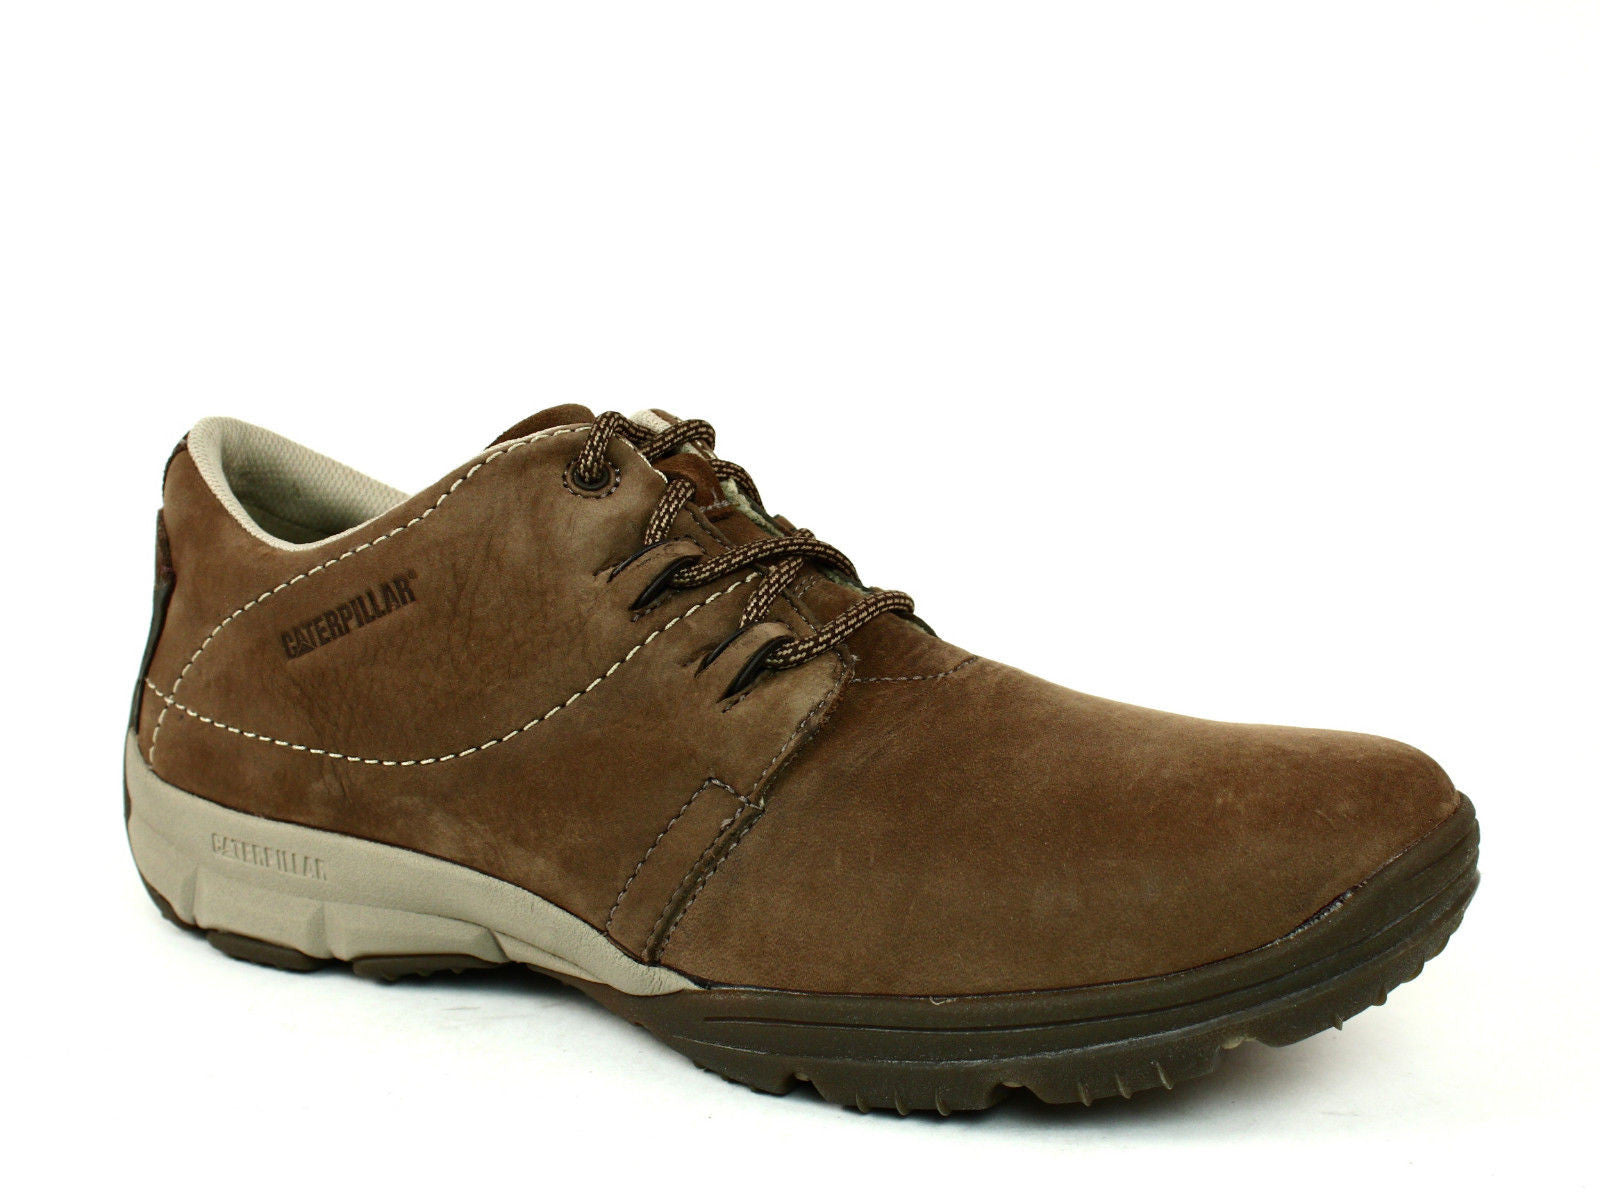 Caterpillar Vitor Oxford Men's Casual Shoes Tyre Nubuck Sneakers